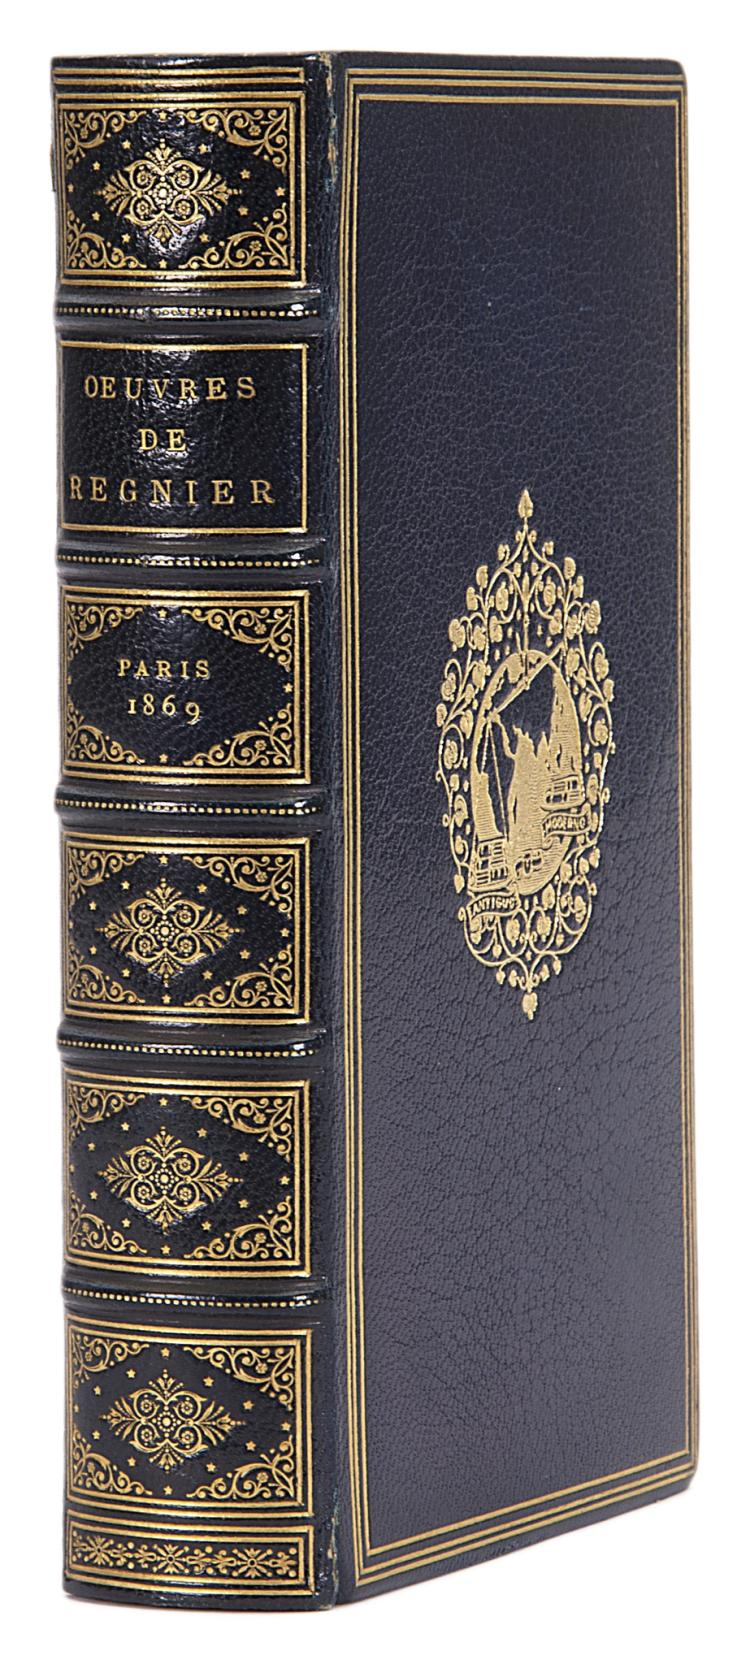 Printed on vellum.- Regnier (Mathurin) Oeuvres, 1869.